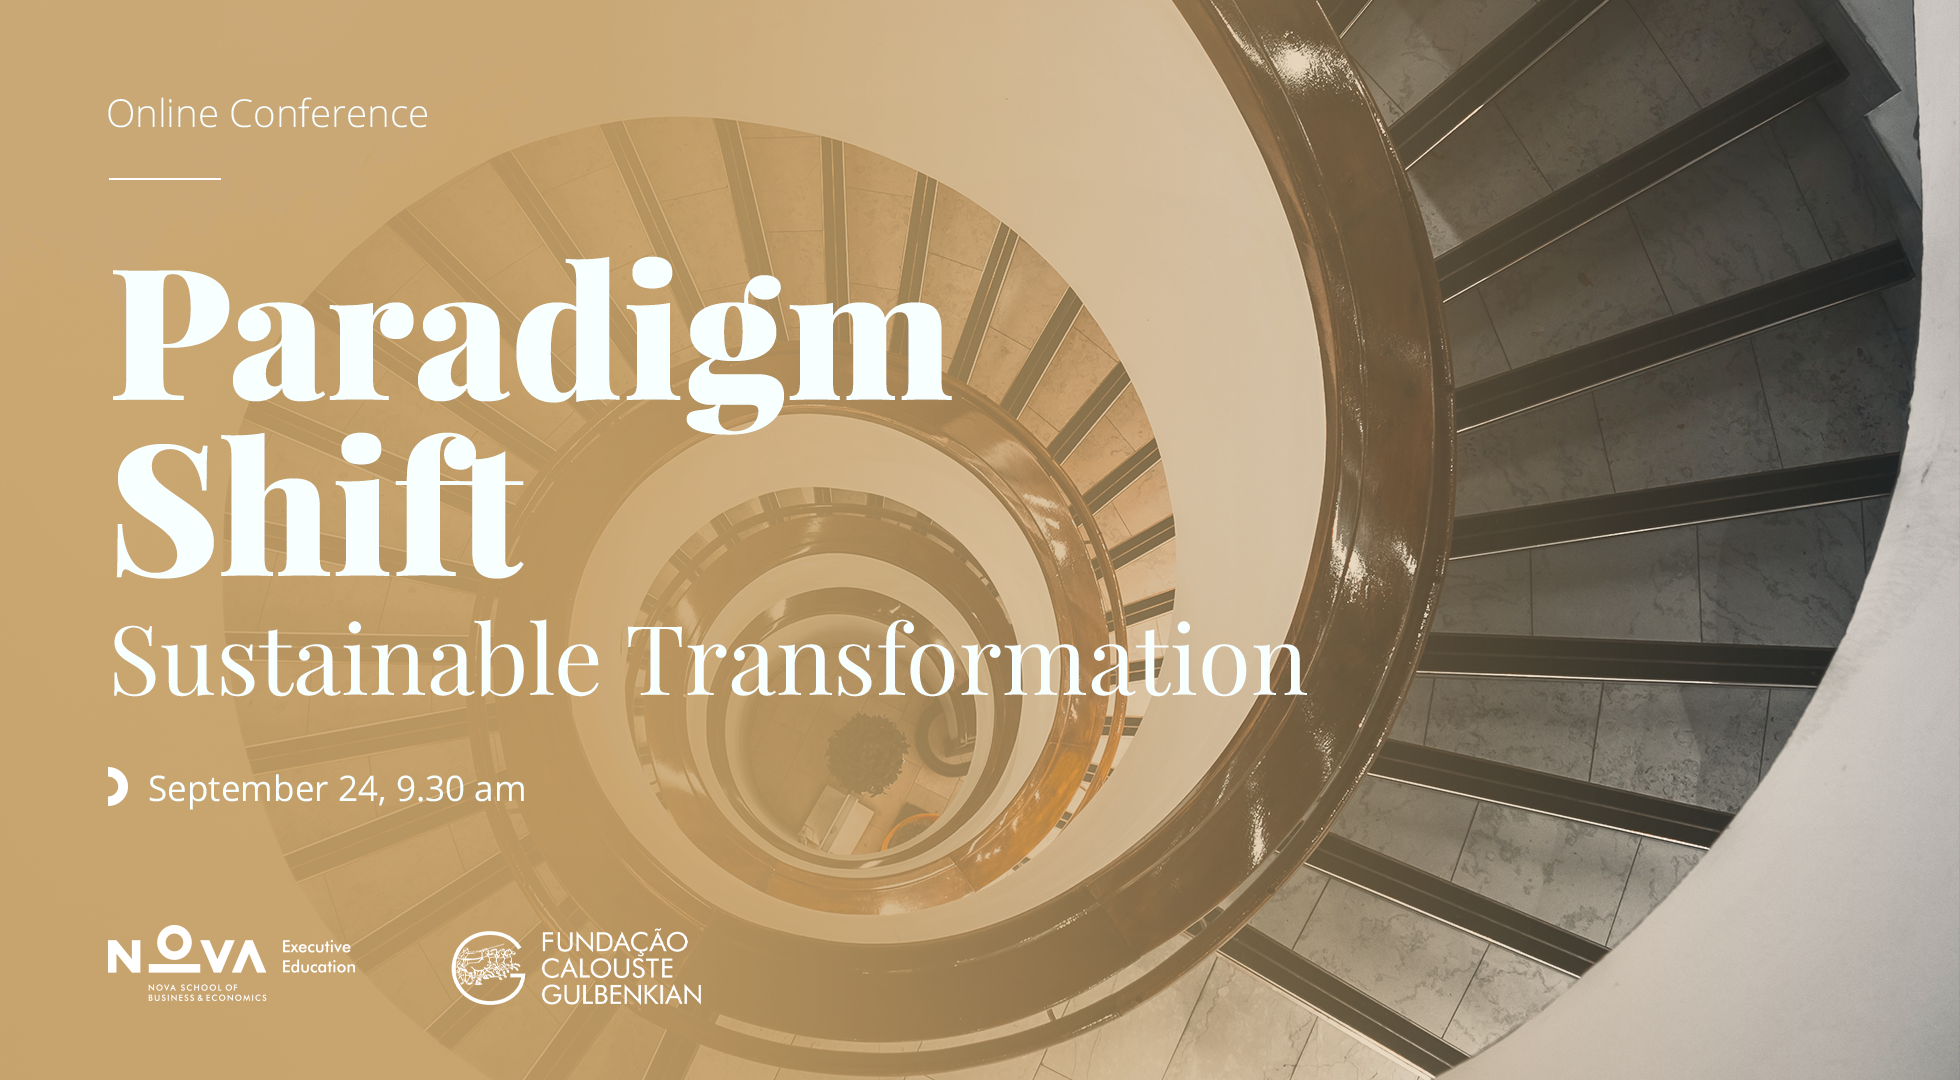 Paradigm Shift Conference: Sustainable Transformation